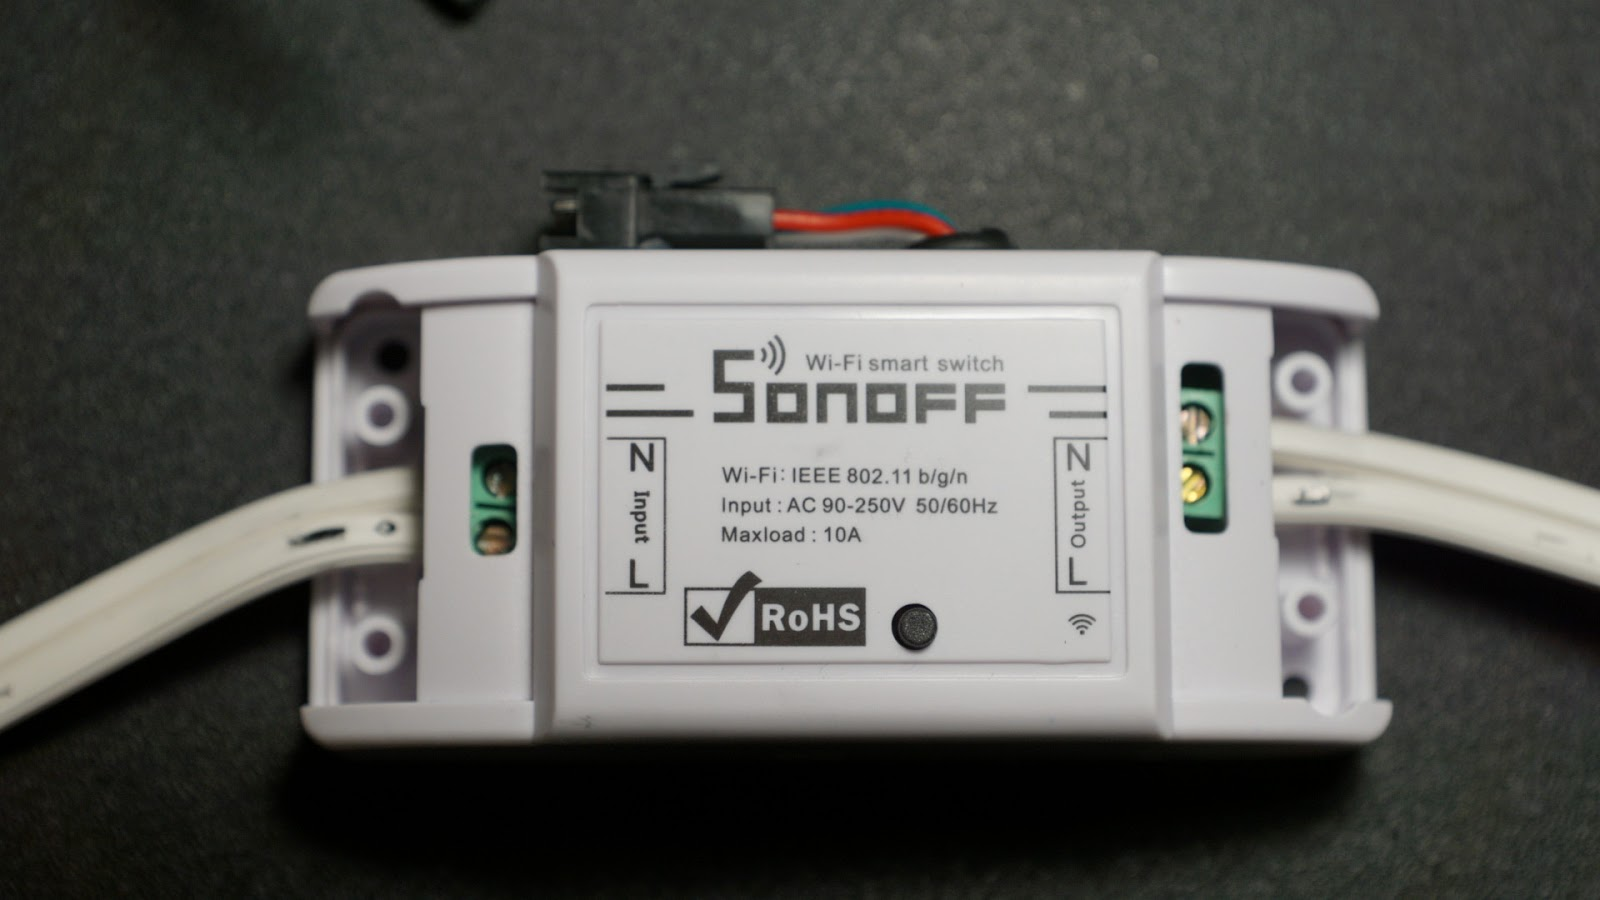 Hacking The Sonoff Wifi Switch